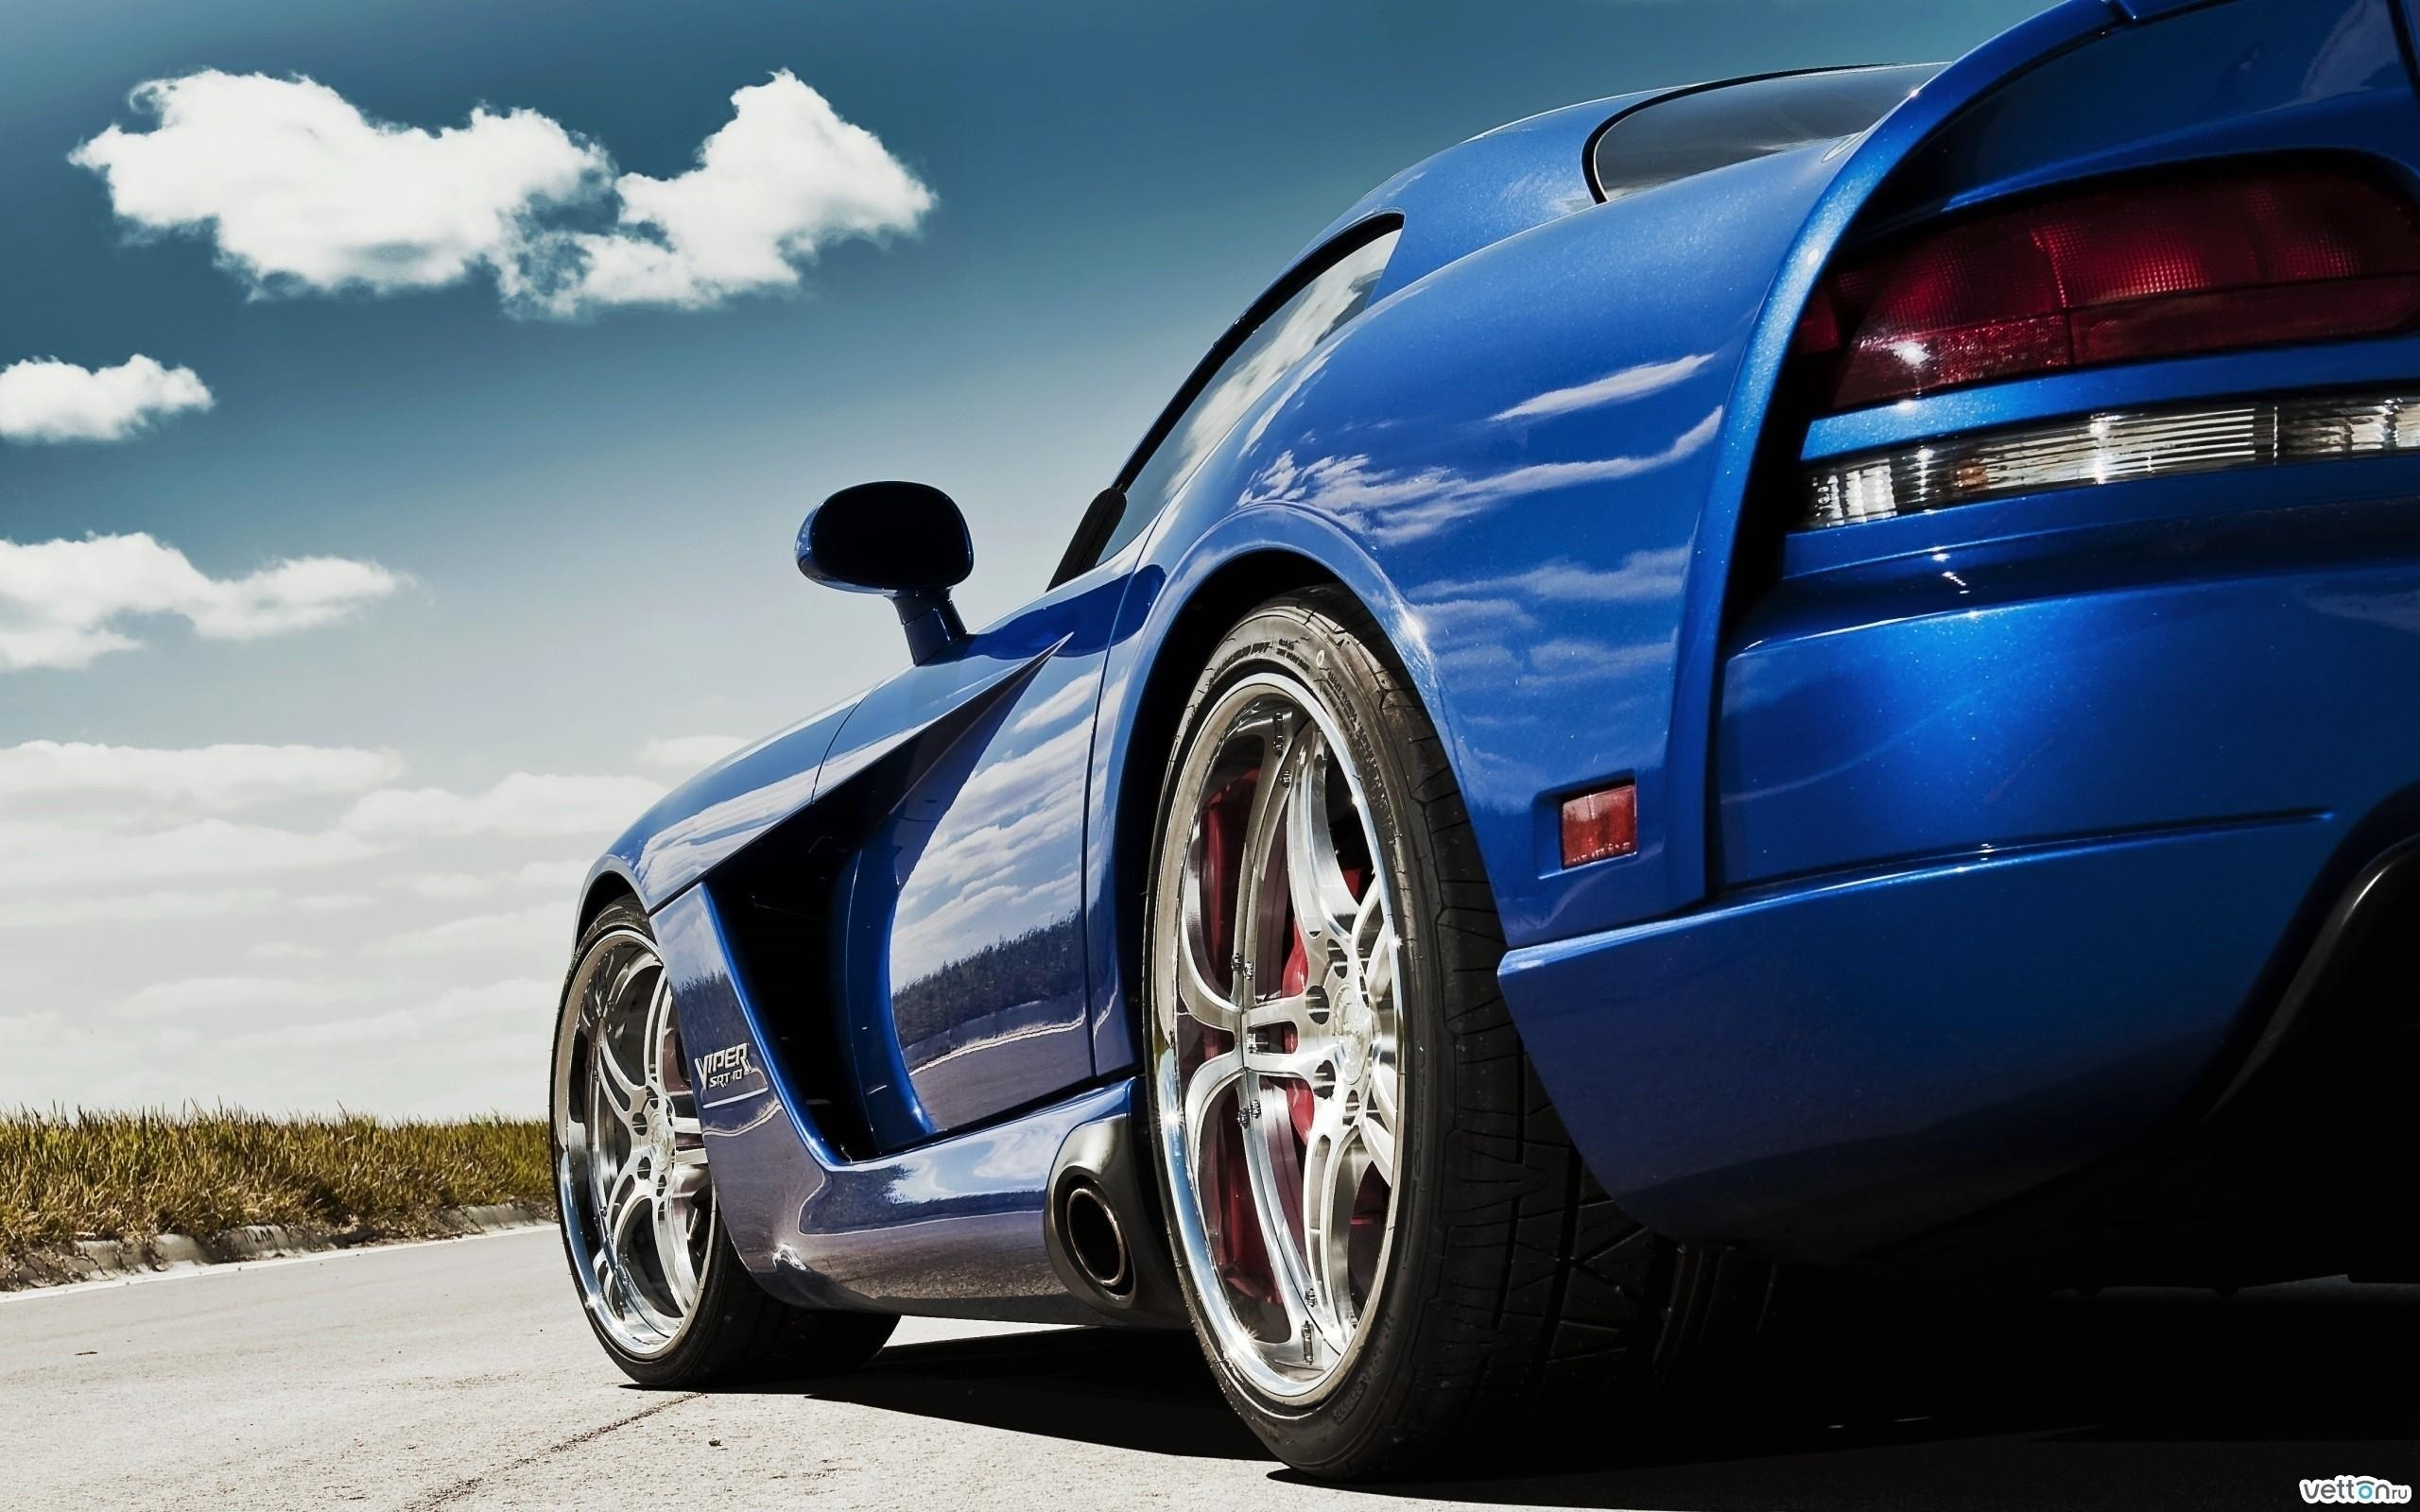 Res: 2560x1600, 4. car-wallpapers7-600x375